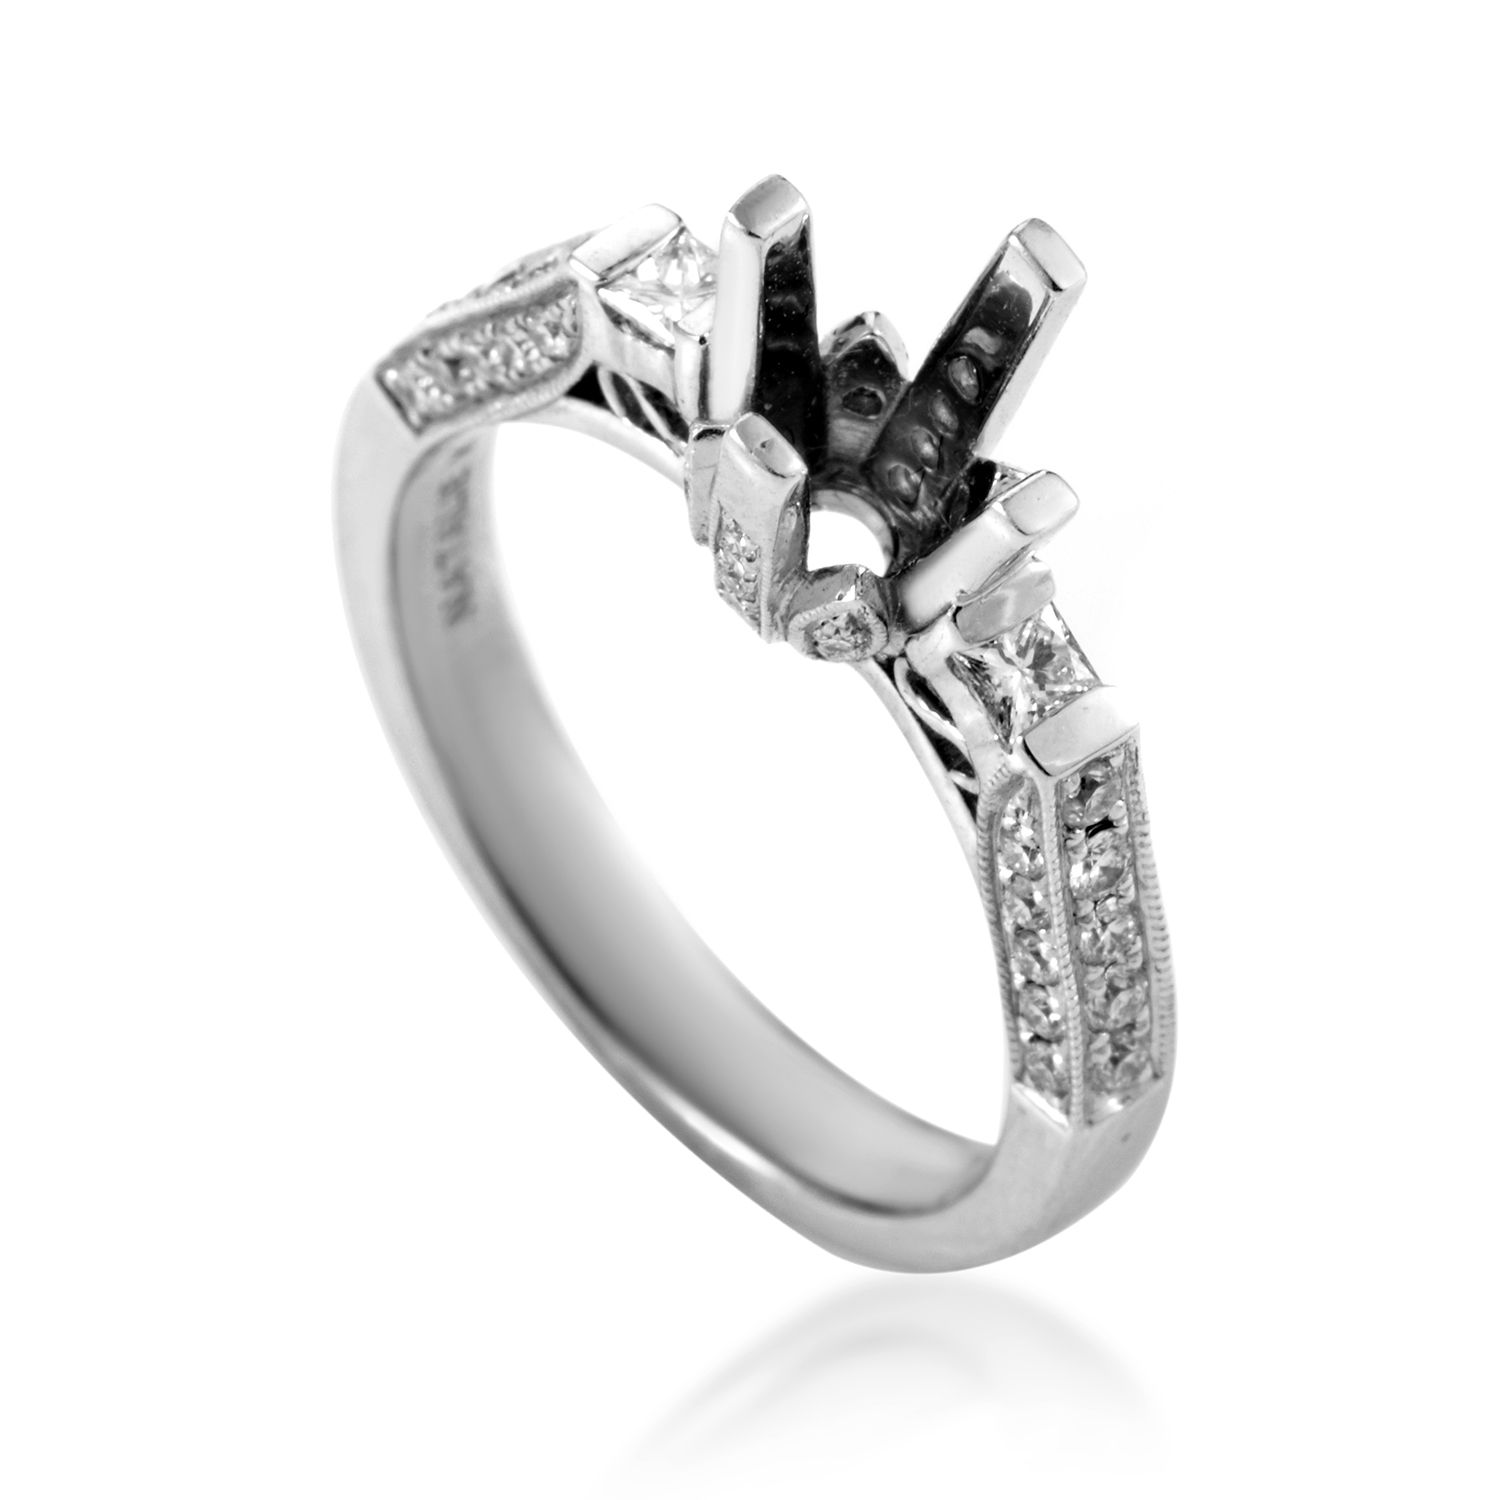 Women's 14K White Gold Diamond Engagement Ring Mounting SM4-041212W